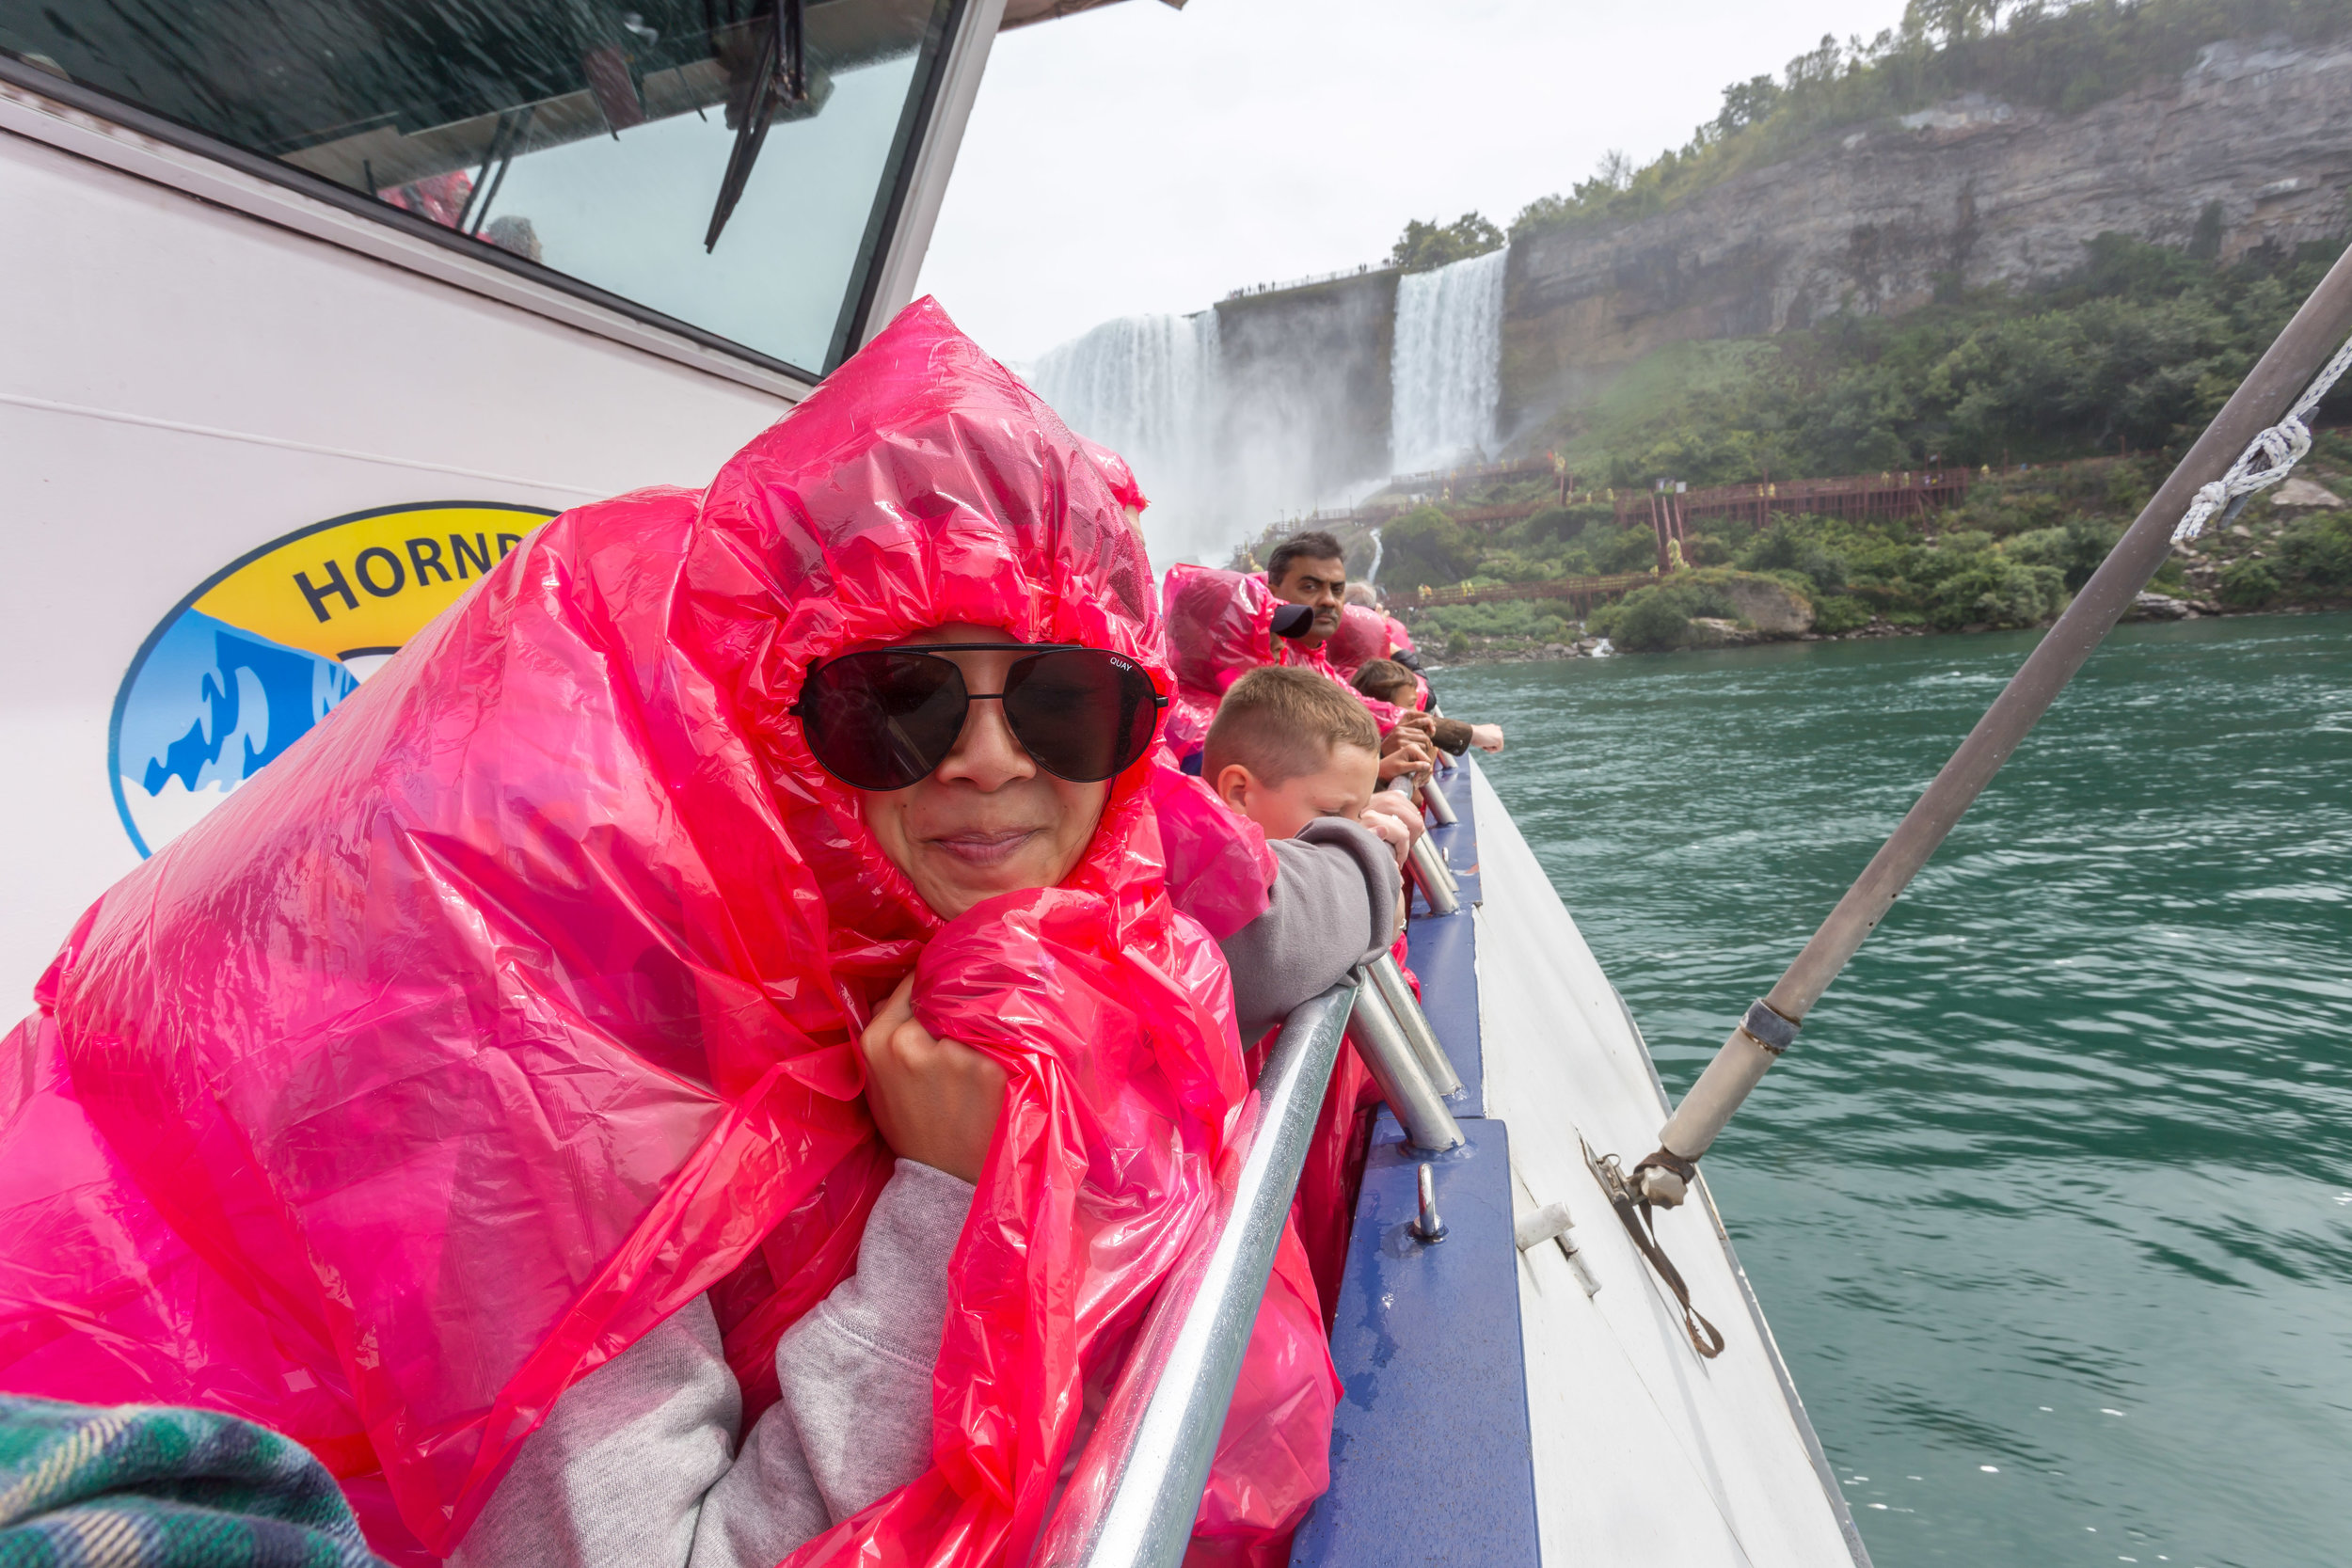 Here I am sporting the oh so fashionable poncho. Not sure if it really did much!